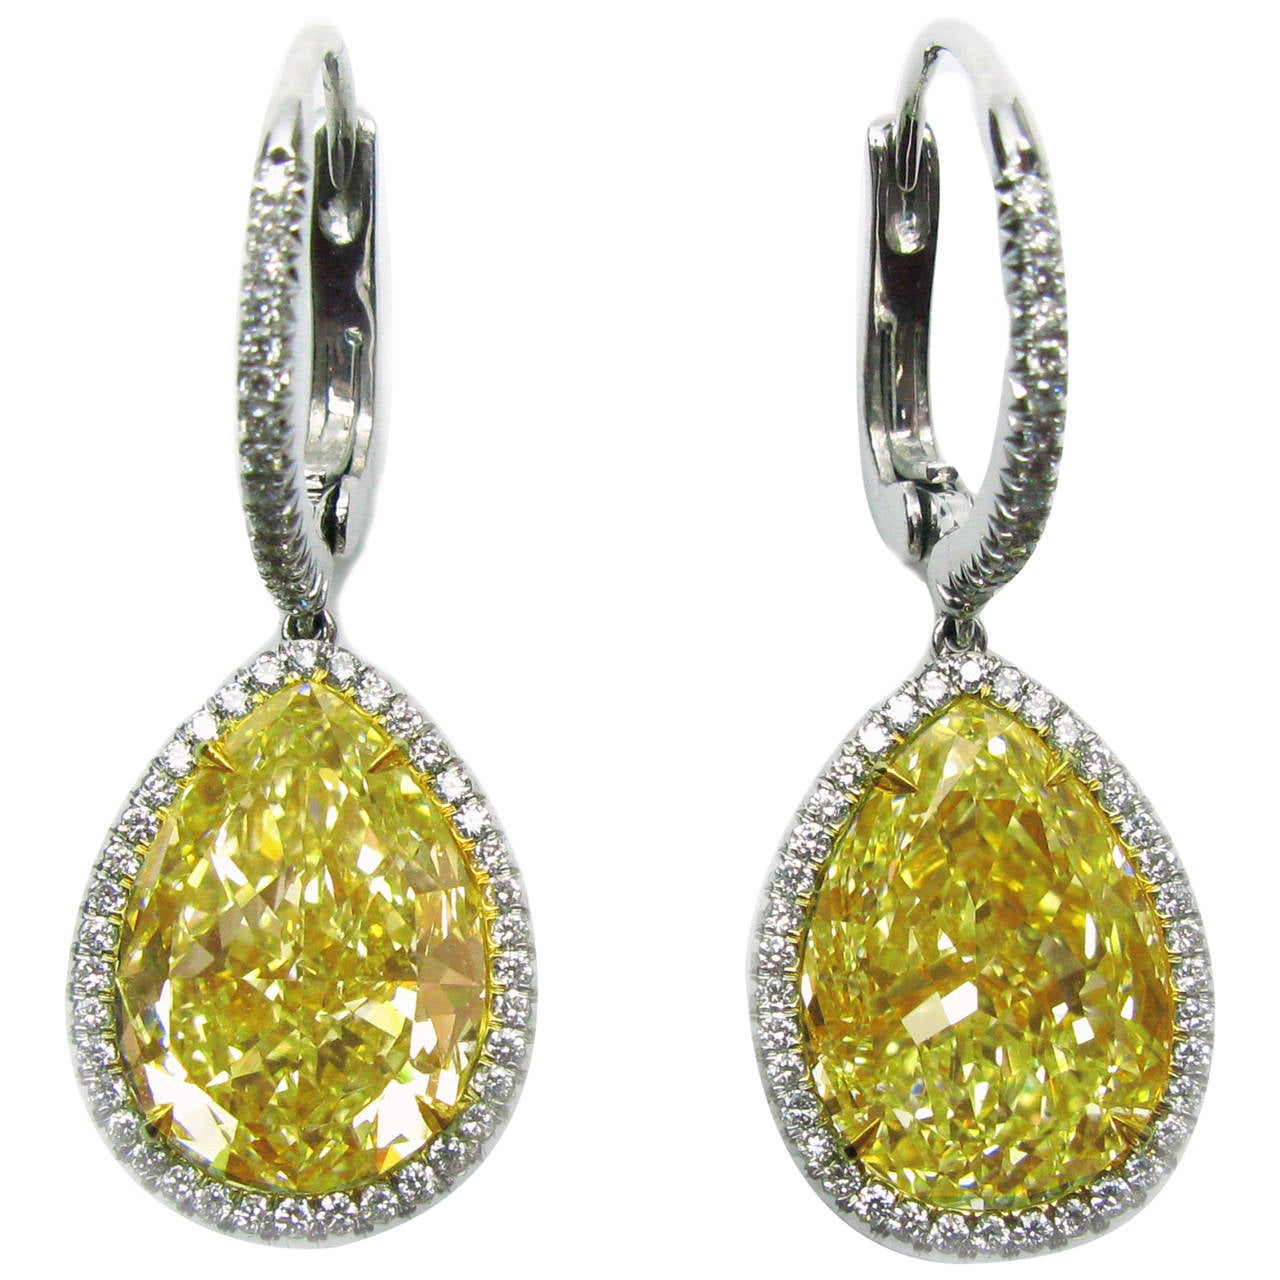 12 75 Carat Gia Cert Fancy Yellow Pear Diamond Leverback Earrings For